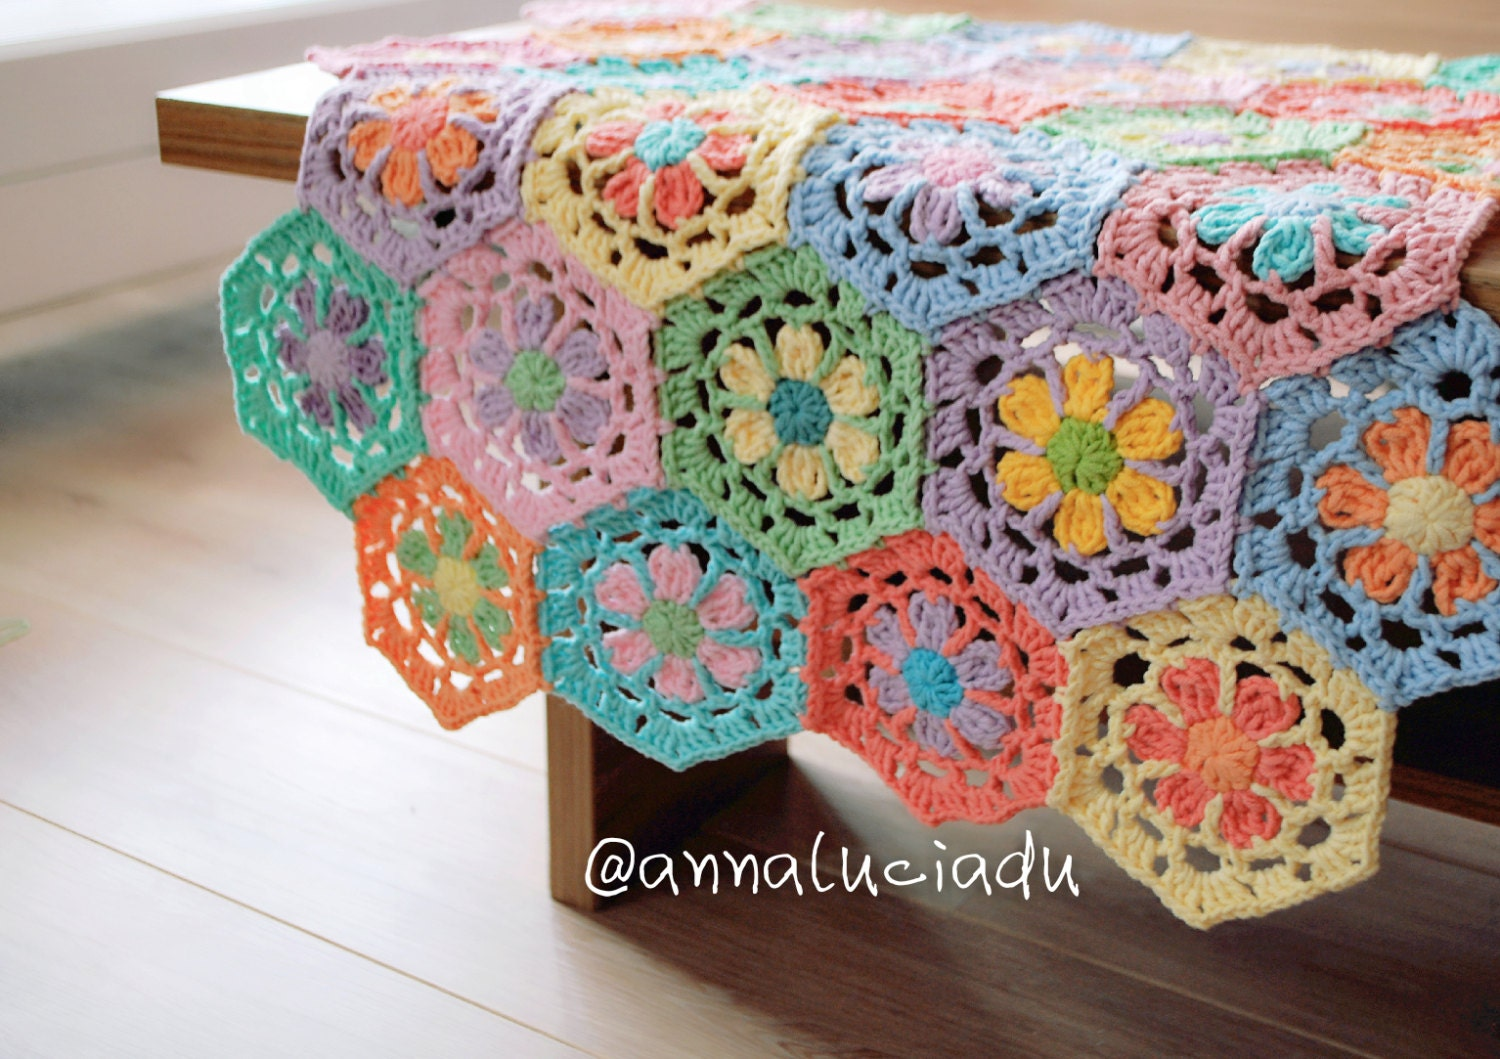 Crochet Flower Pattern Blanket : crochet flower blanket flower tablecloth crochet crochet